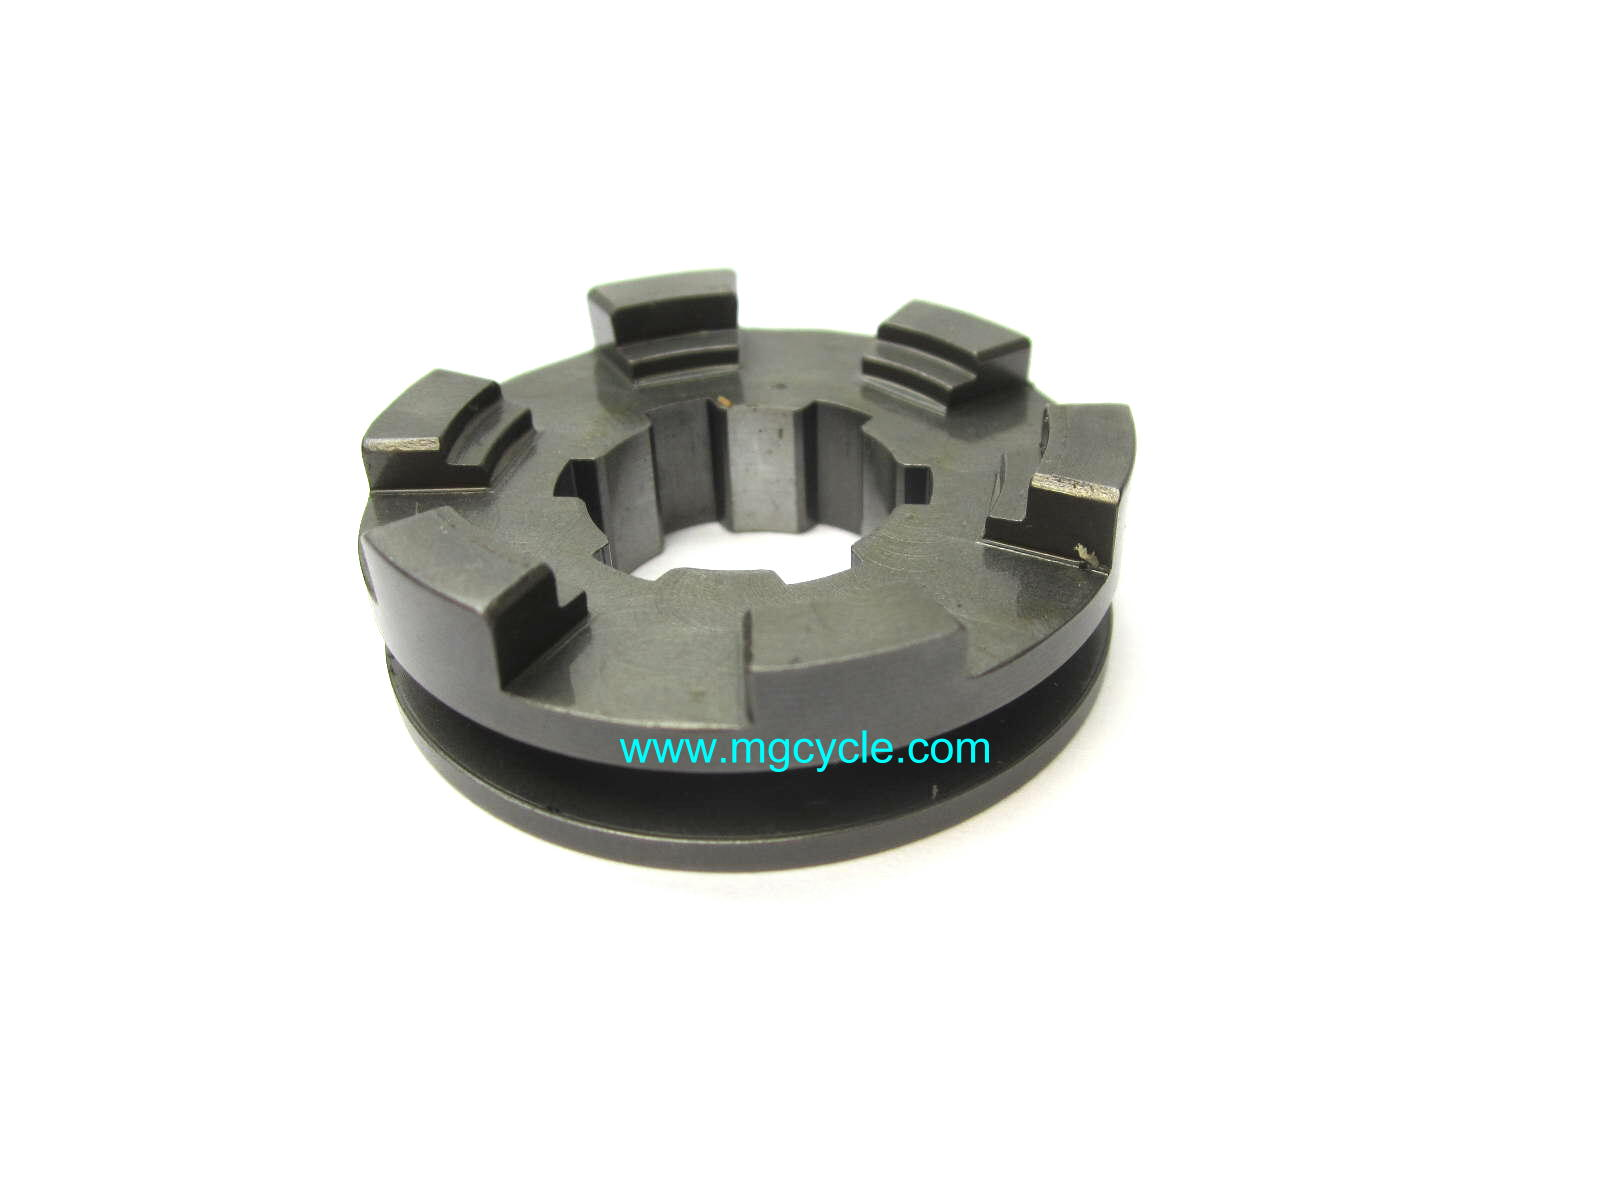 Sliding sleeve 5th gear GU14231510